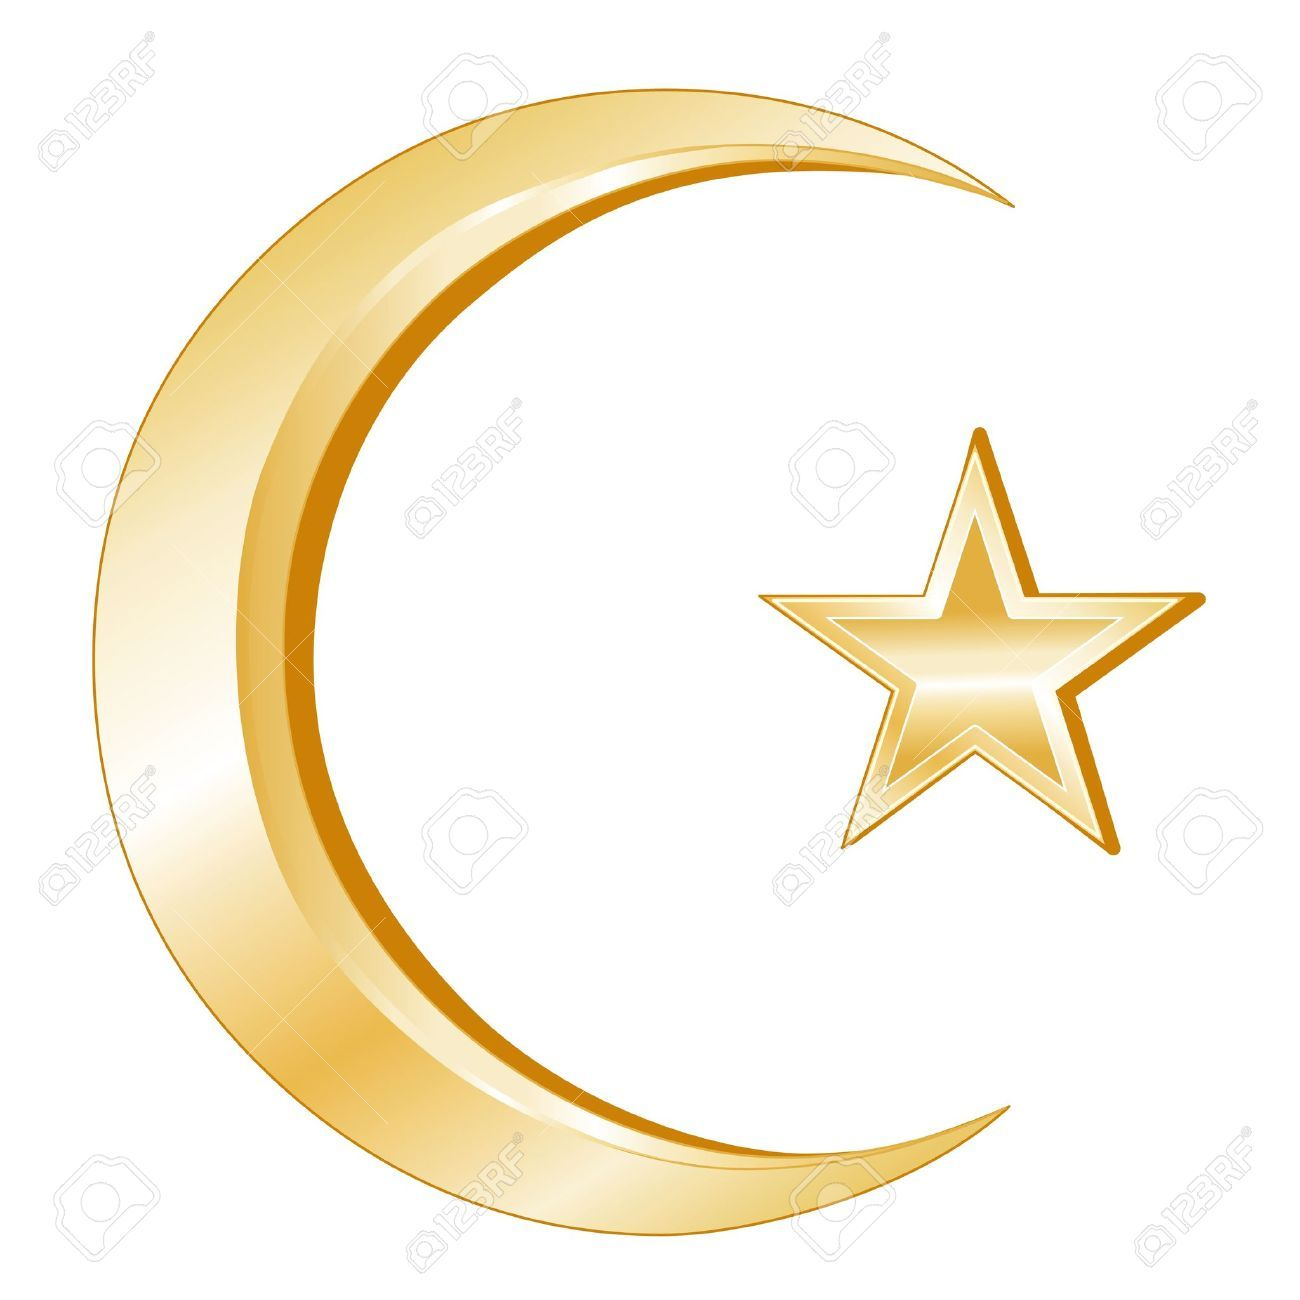 Islam Symbol. Crescent and Star, golden symbols of Islamic ...